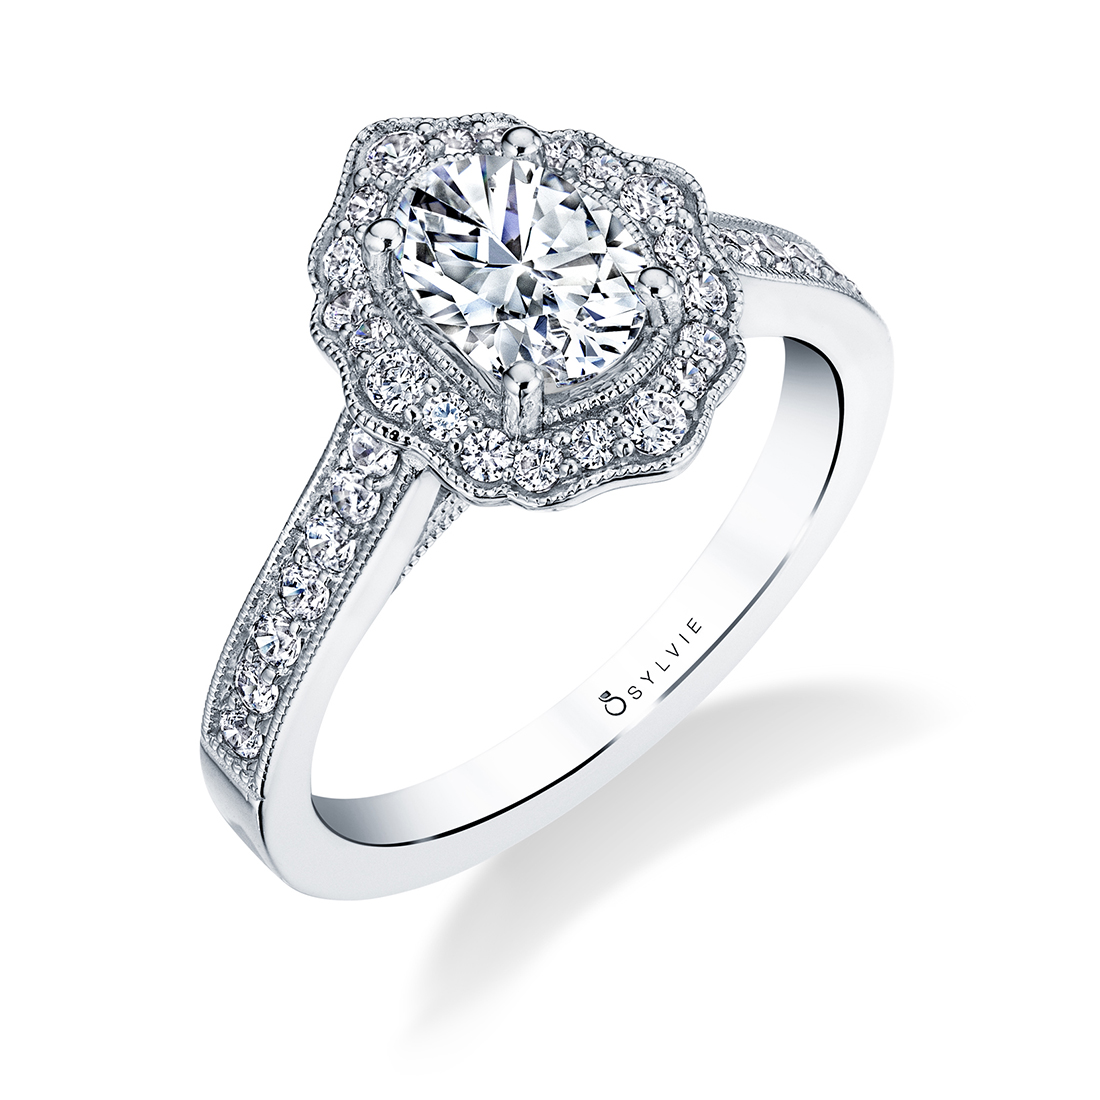 Floral Inspired Engagement Ring S1727-OV